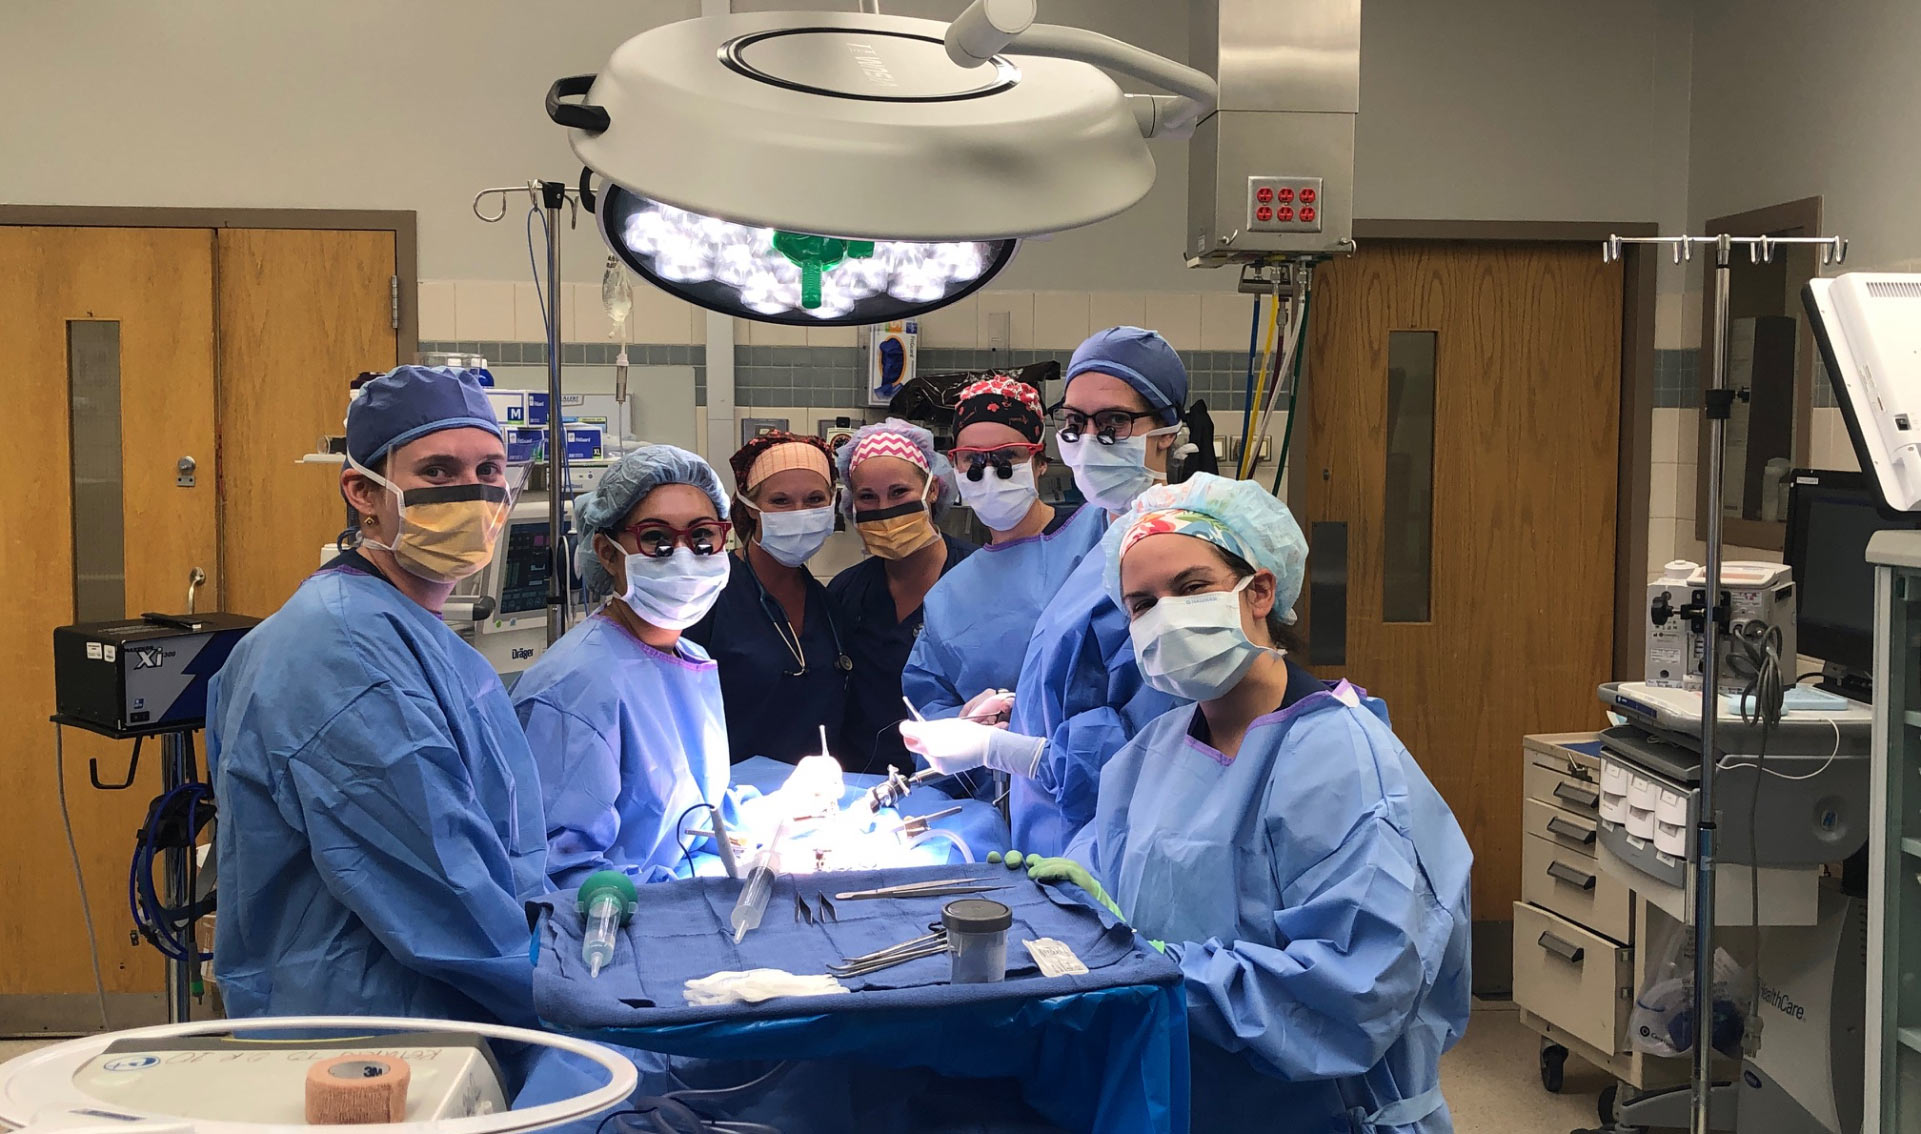 An all-female pediatric endocrinology team, all dressed in blue scrubs and surgical headgear with masks, circled around an operating table.